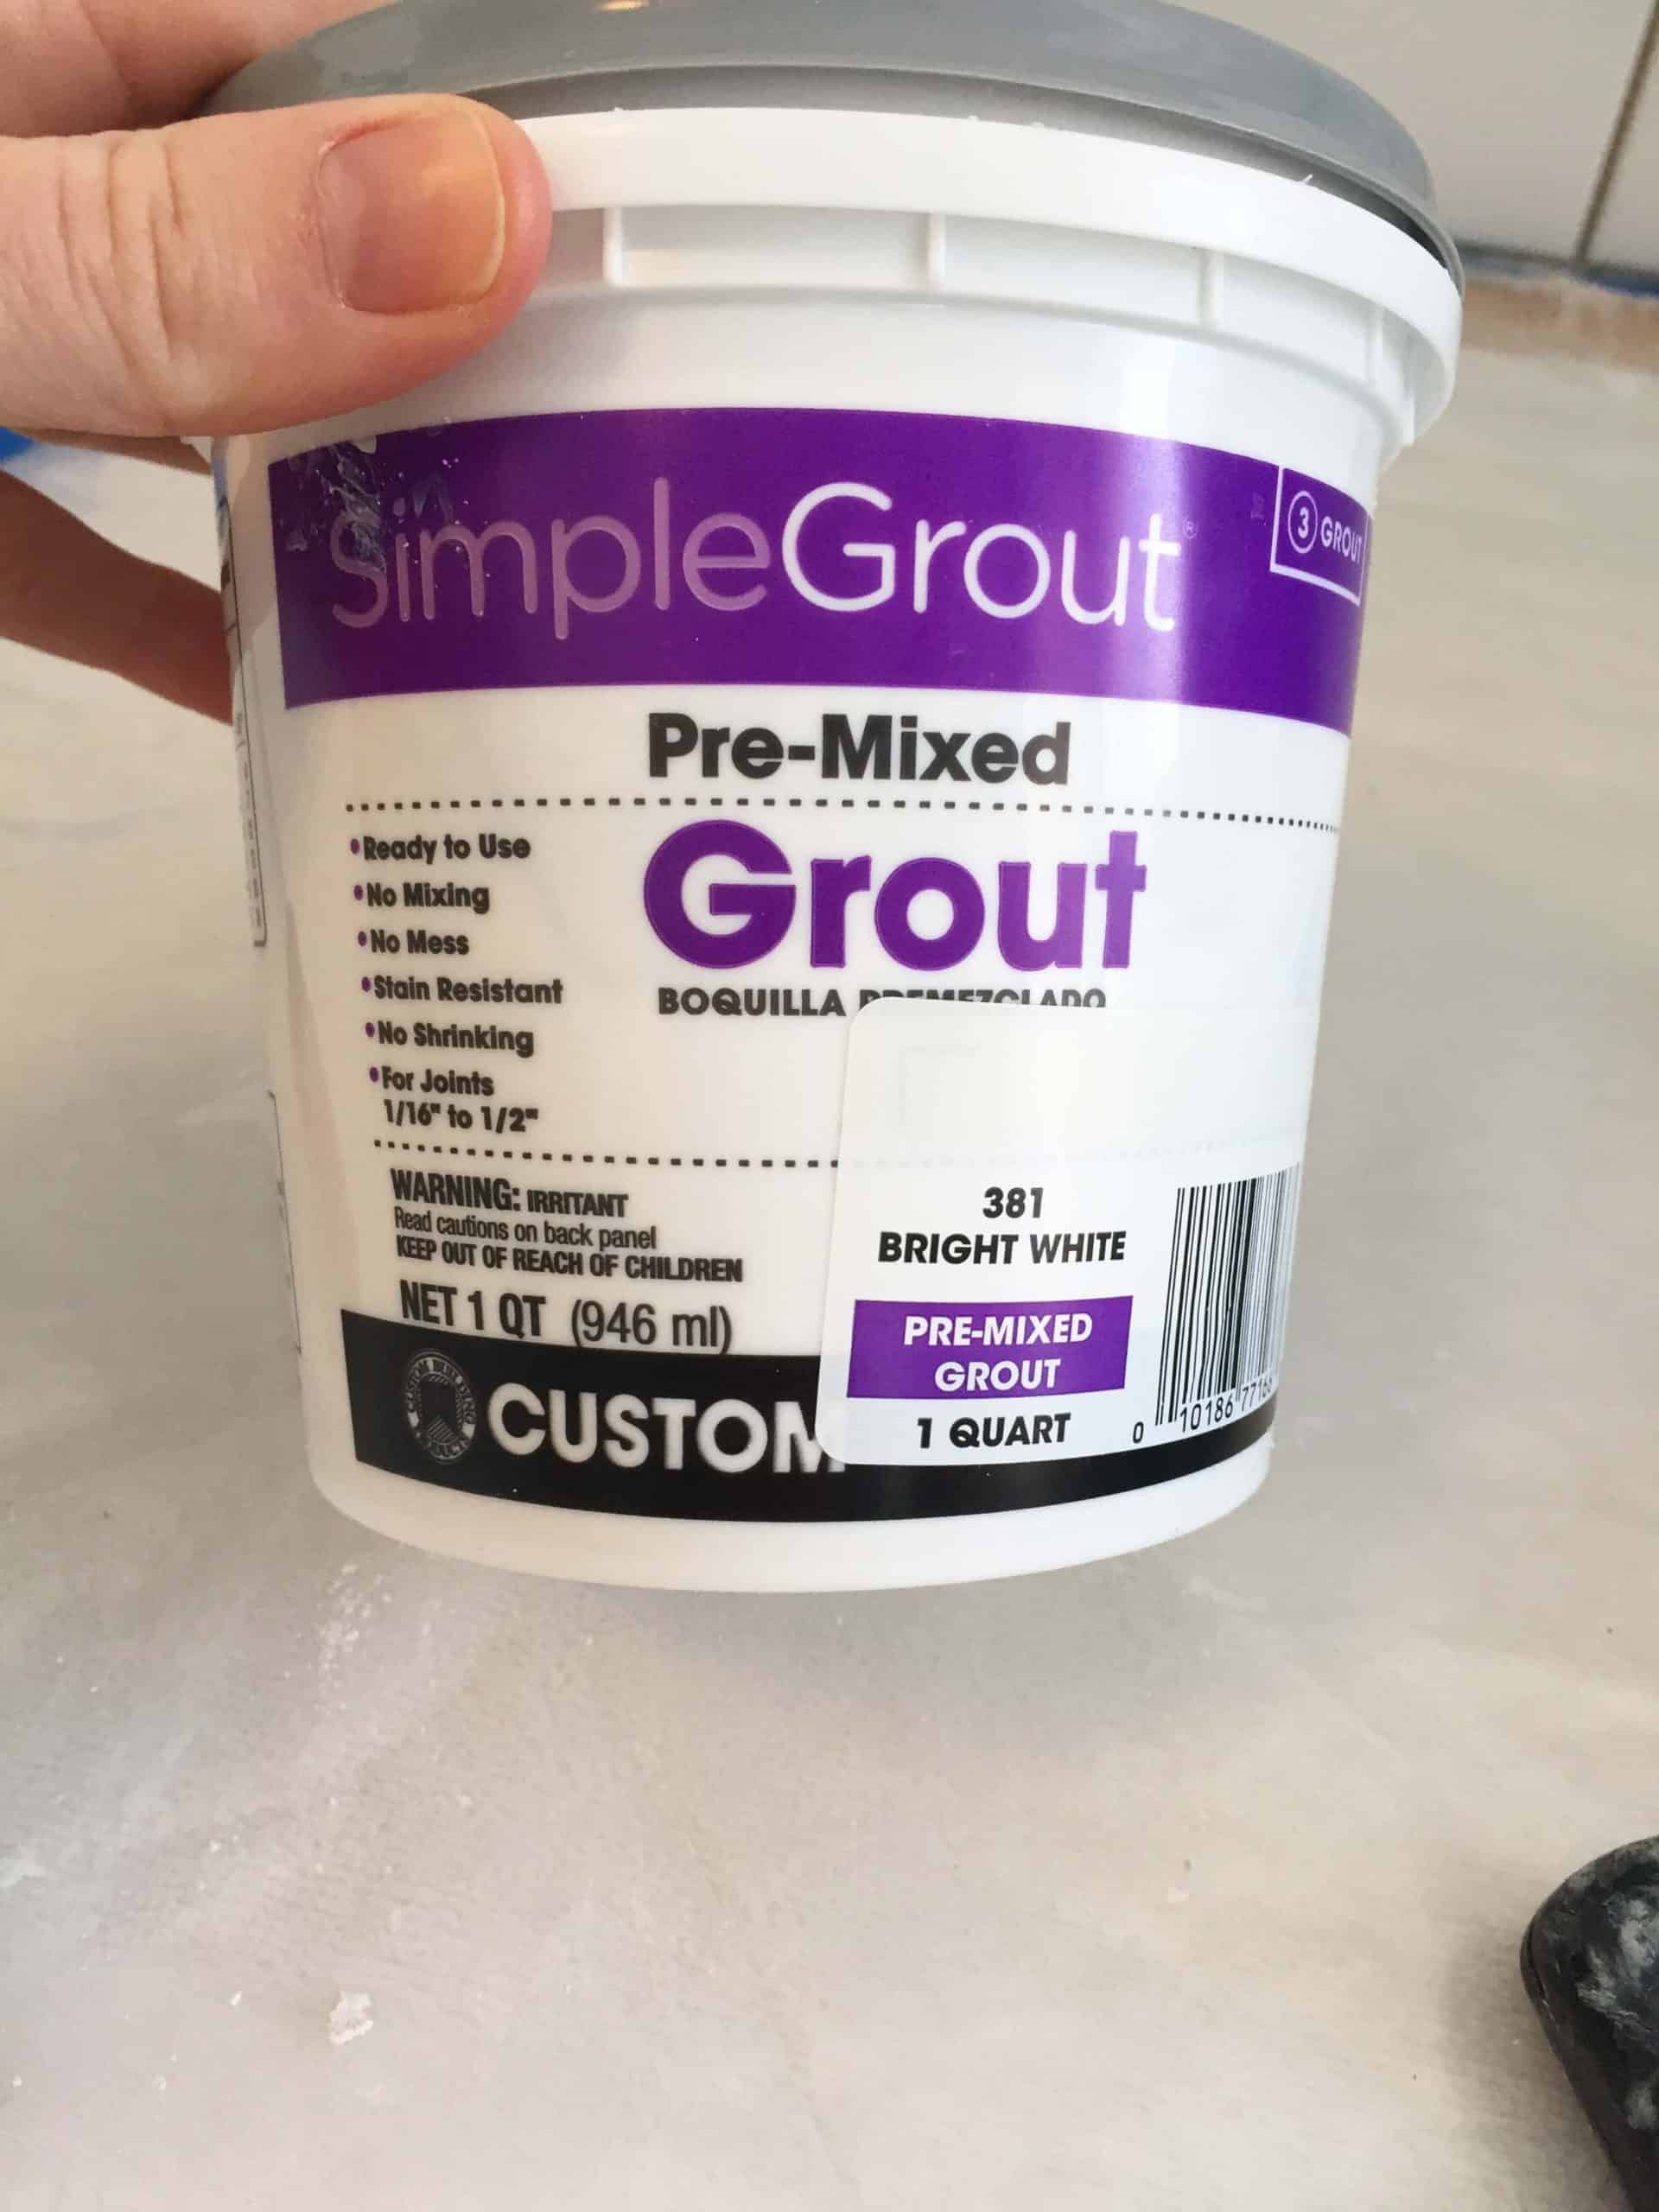 simple grout pre-mixed bright white grout